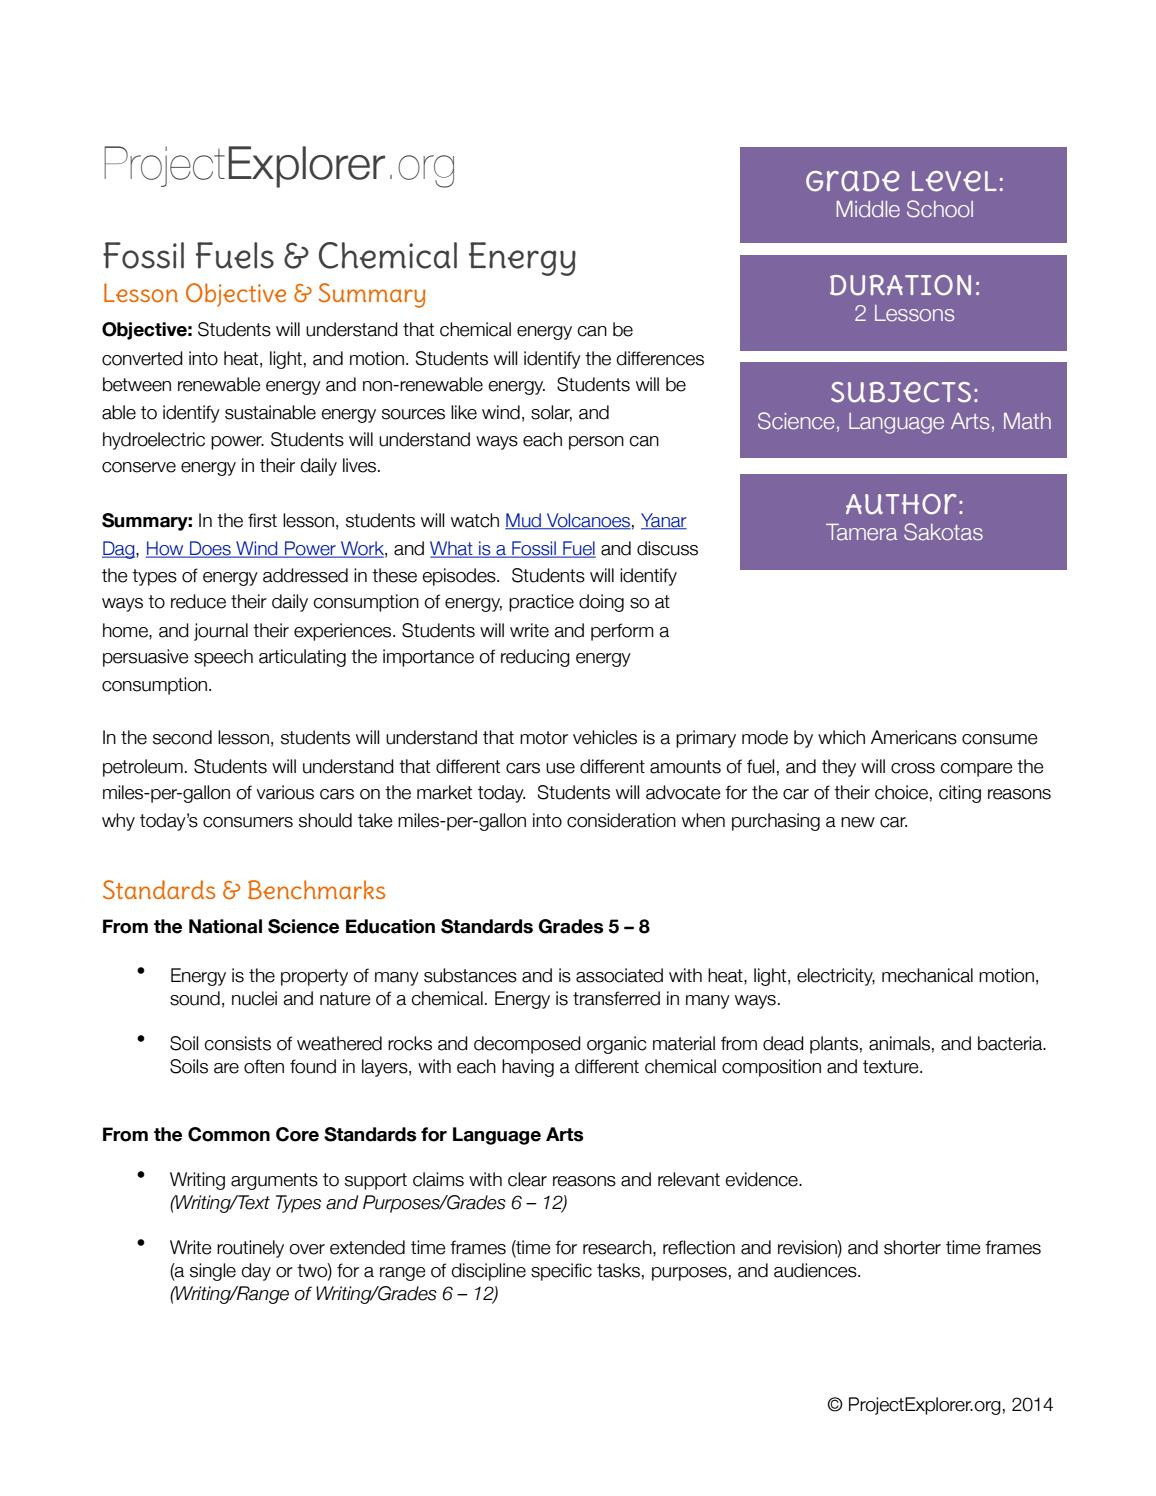 Fossil Fuels Worksheet Middle School Fossil Fuels & Chemical Energy Middle School by Pe